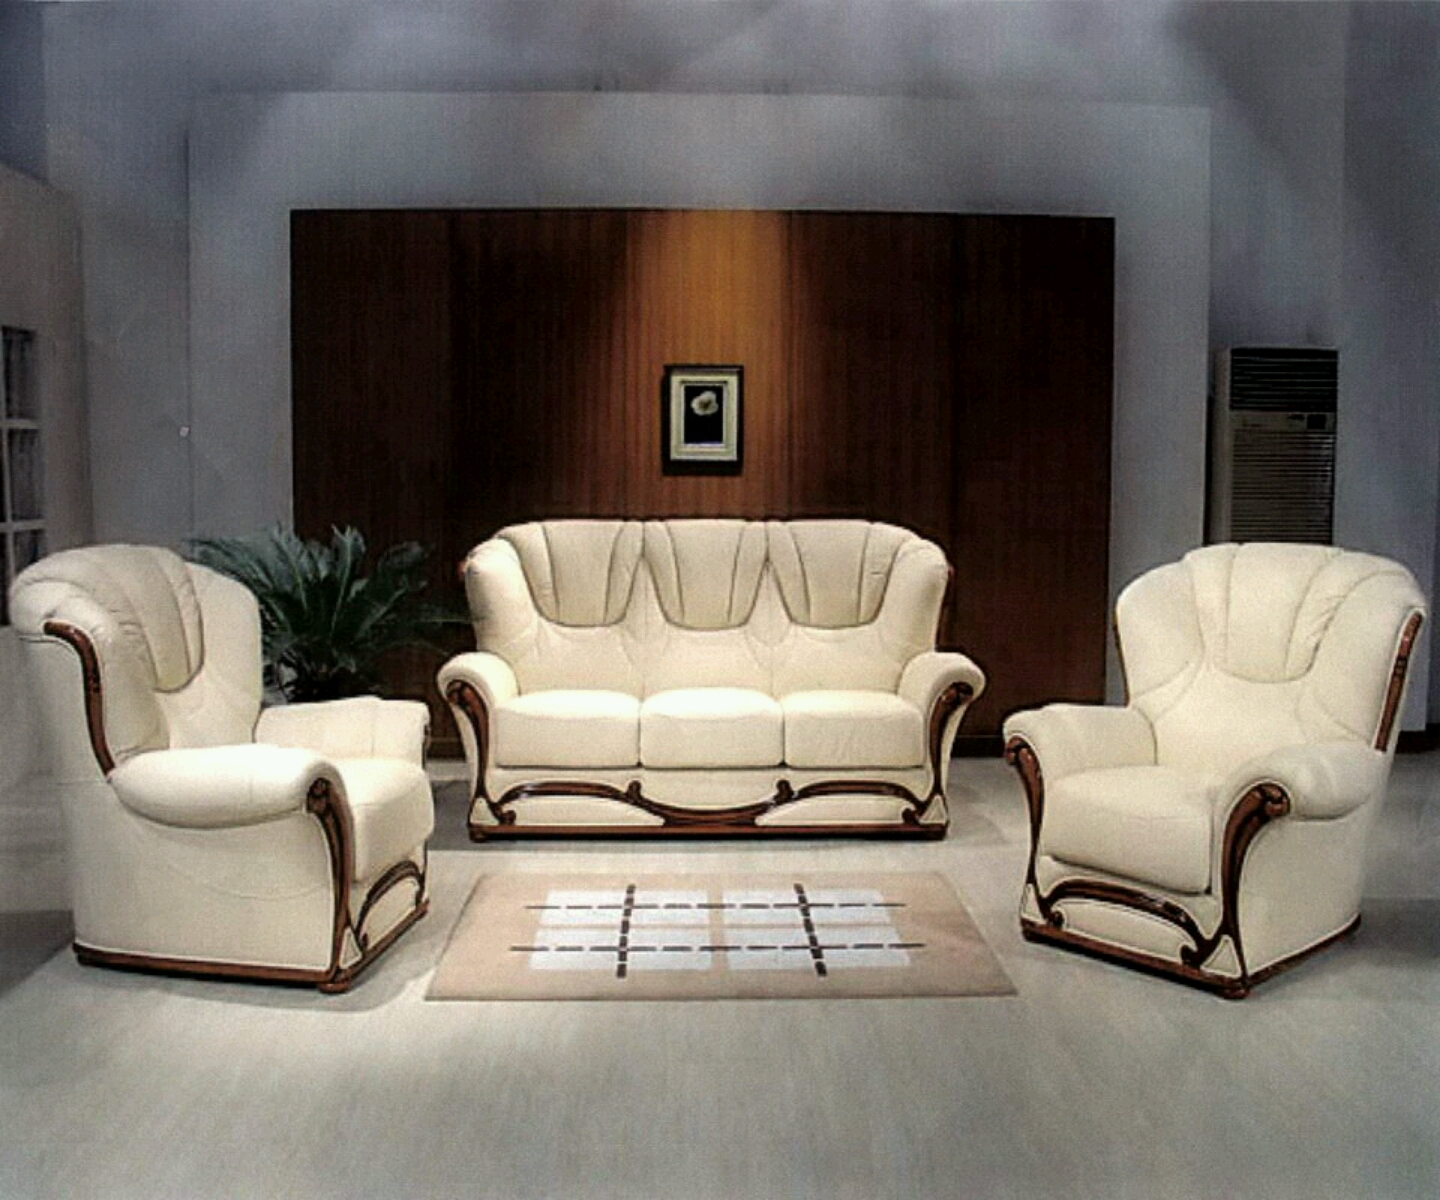 H for heroine modern sofa set designs for Sofa garnitur